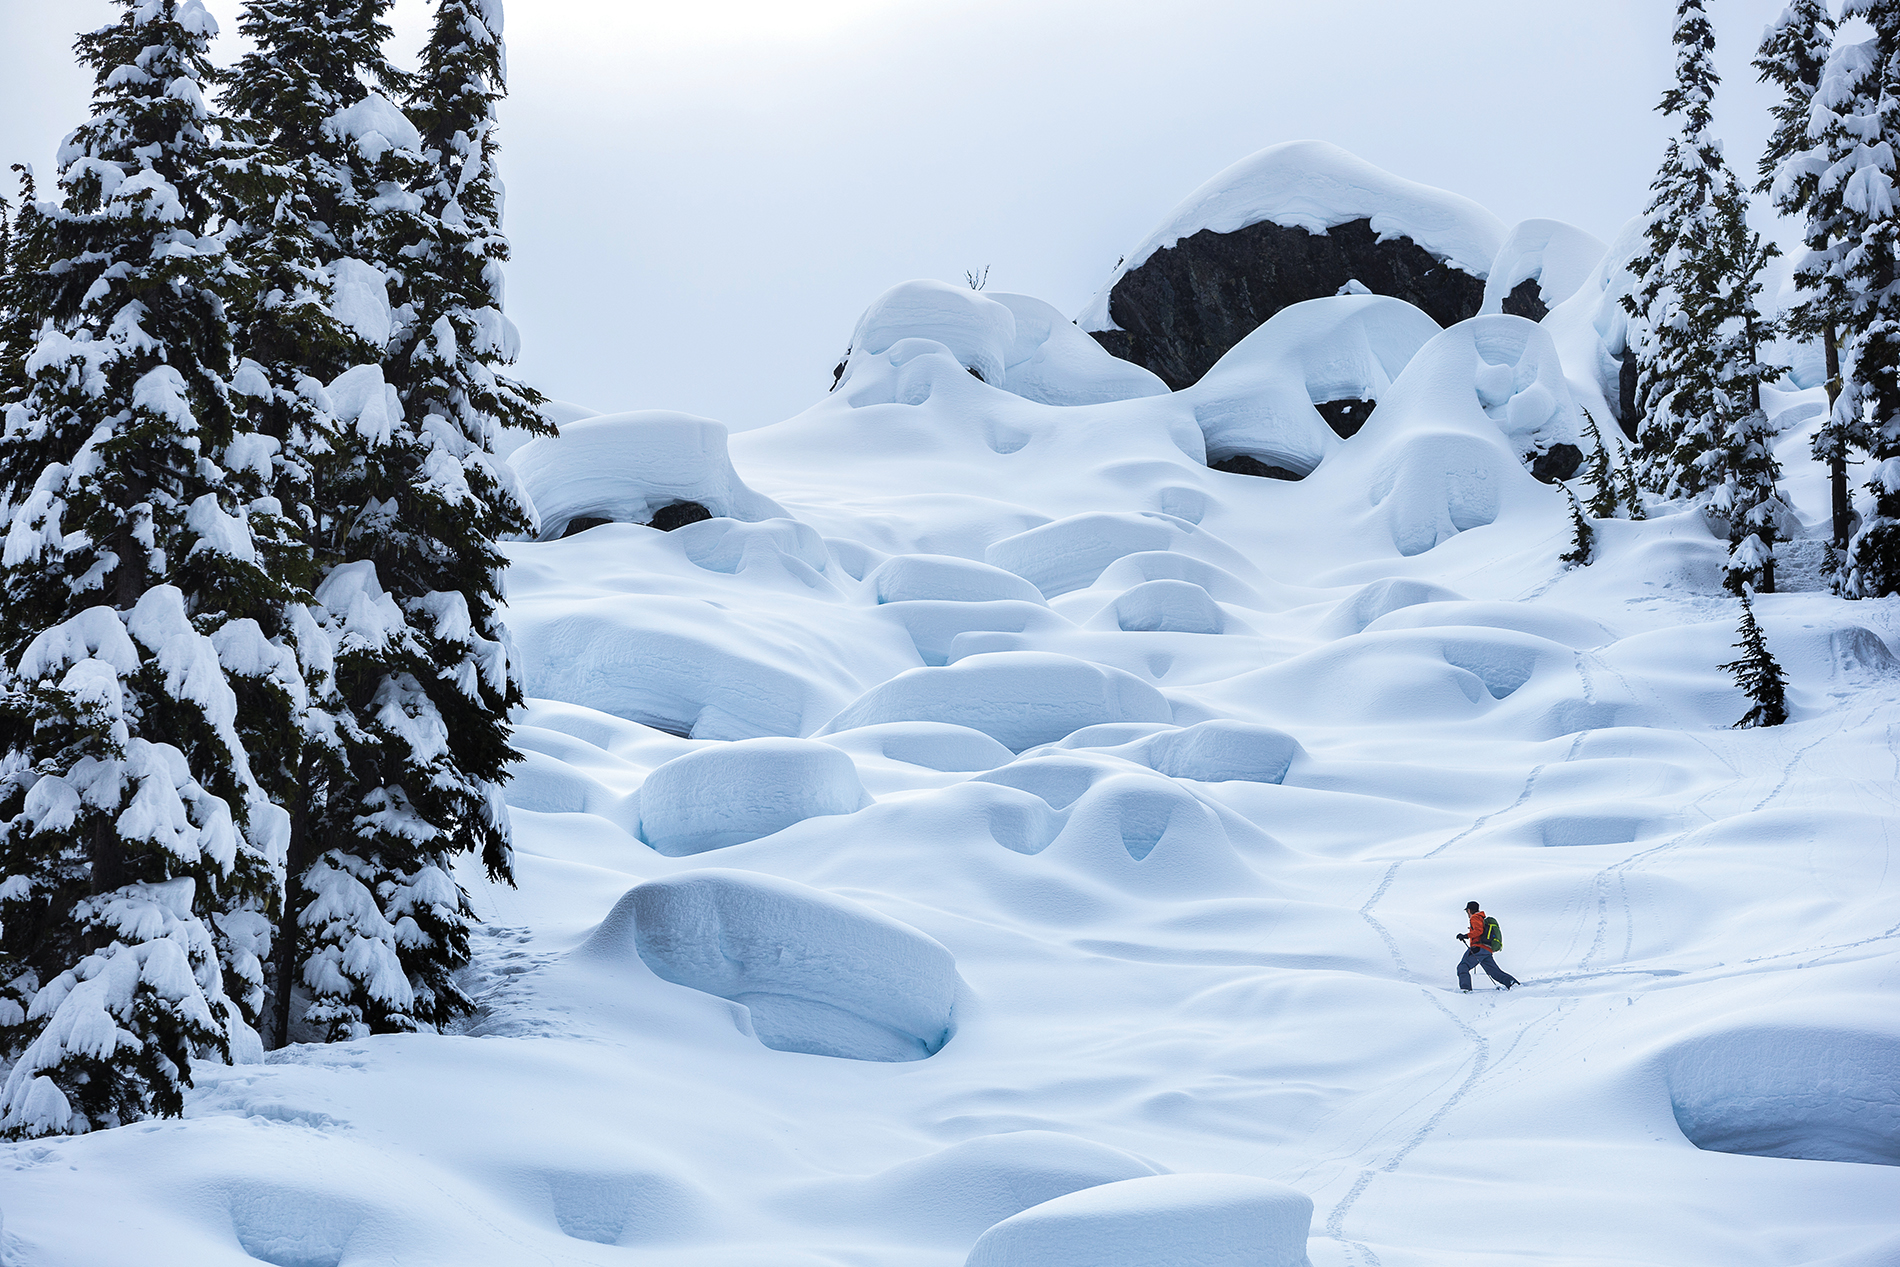 Location: Whistler Backcountry, BC